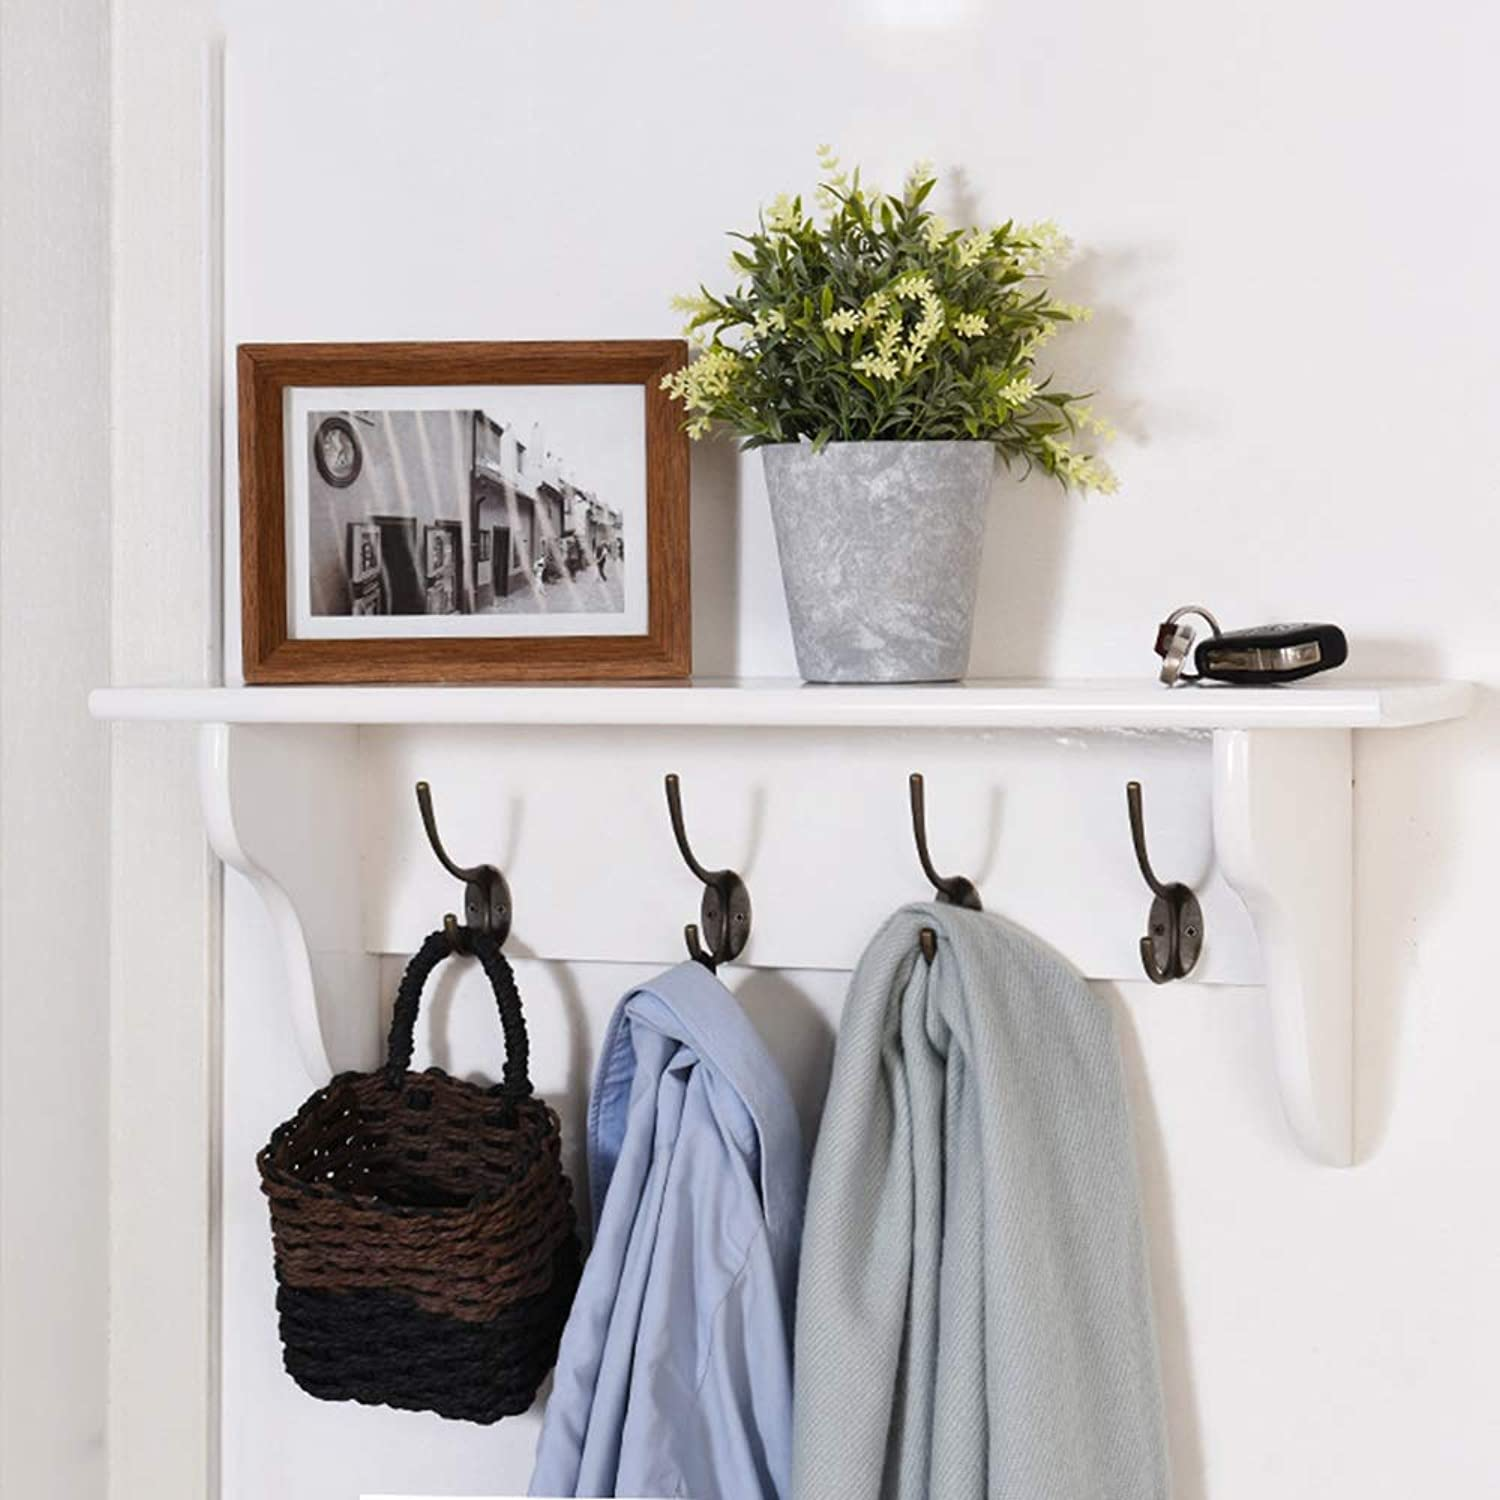 QFFL Coat Hook, Wall-Mounted Coat Rack with Shelf and 4 Hook White Wooden Wall Shelf for Hall Bathroom Kitchen and Cloakroom Wall Hanger